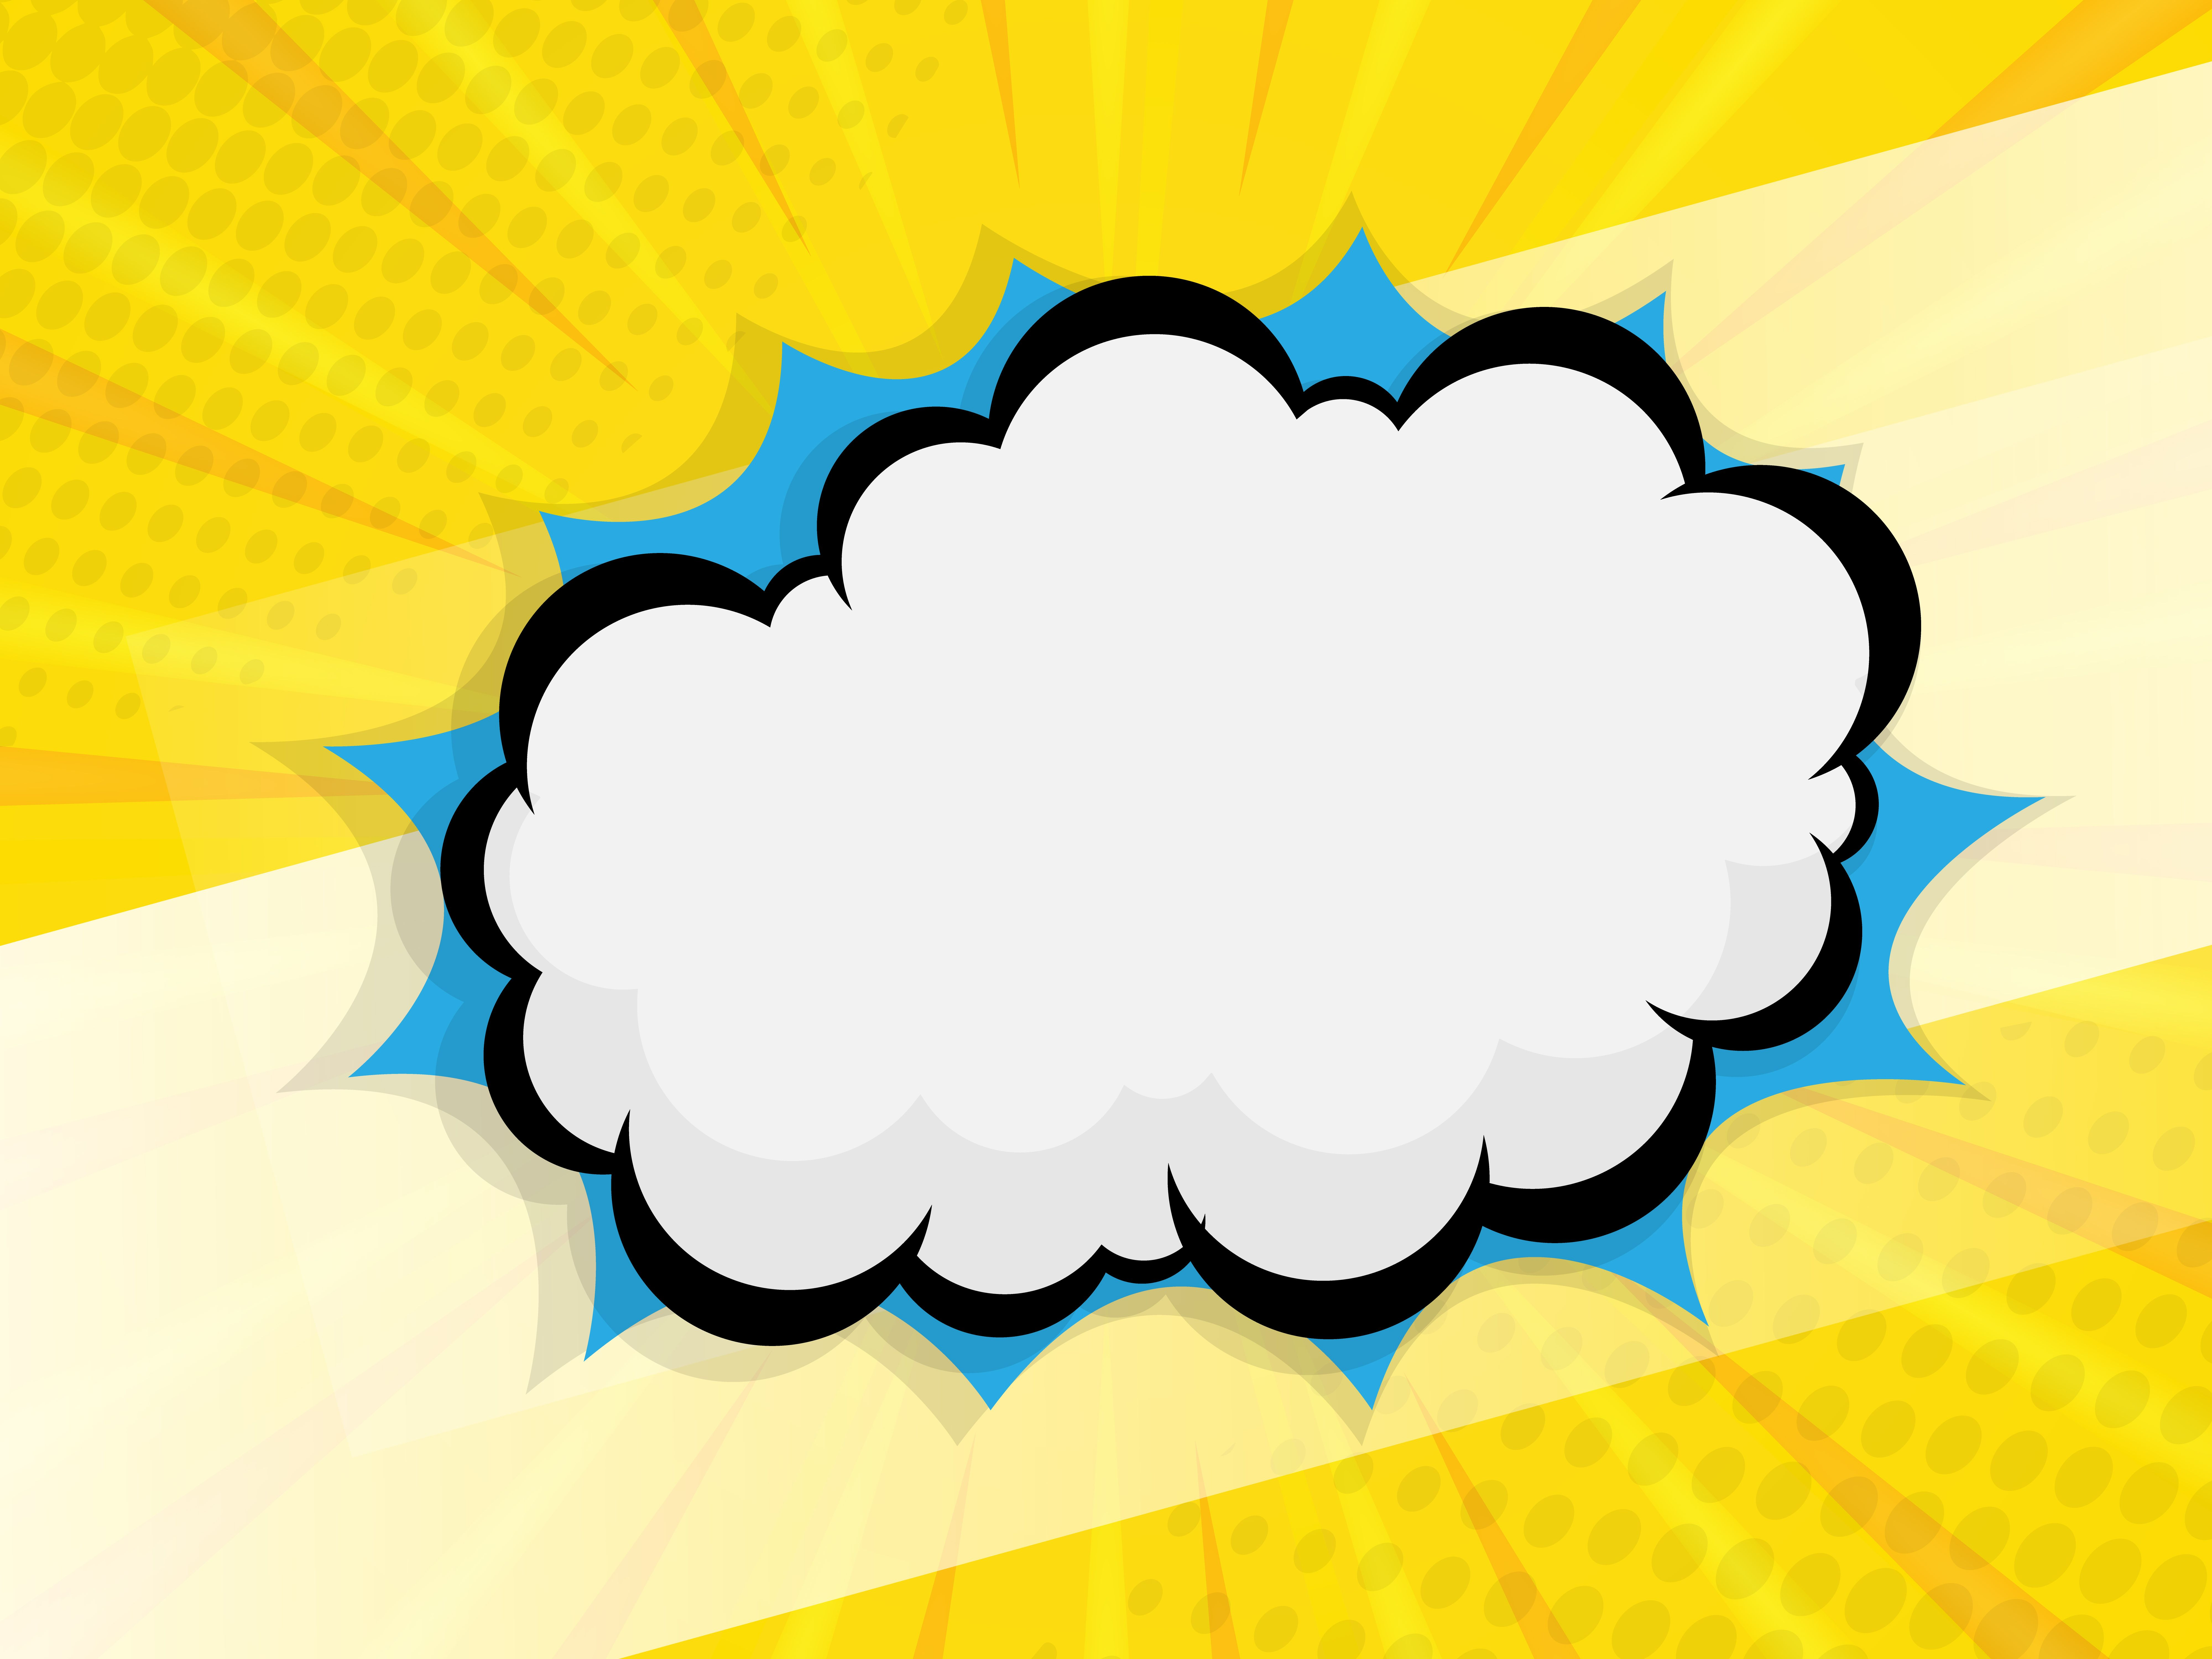 blank speech bubble comic book vector background. Choose